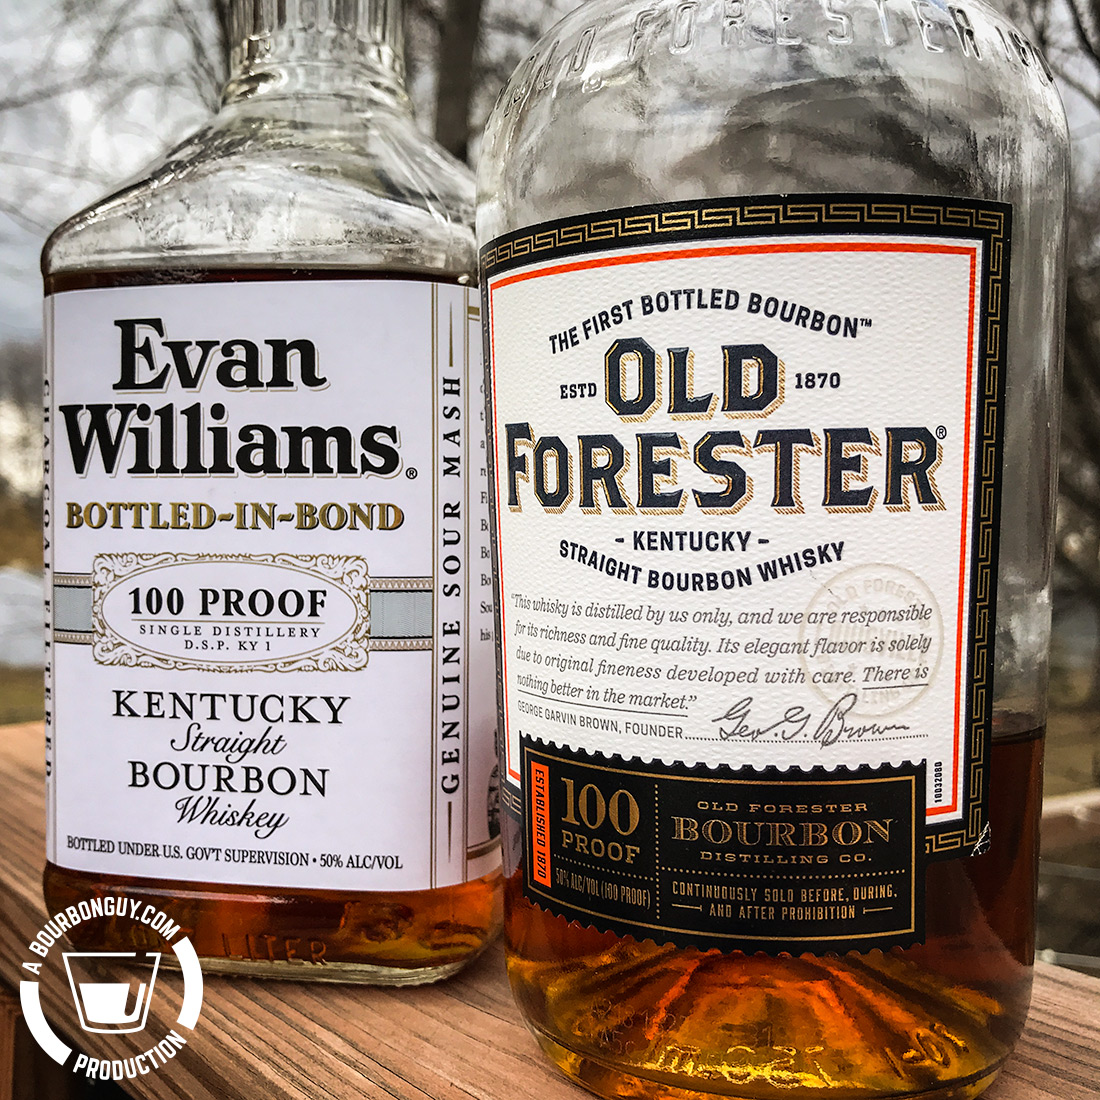 IMAGE: Front labels of Evan Williams Bottled in Bond and Old Forester Signature 100 proof